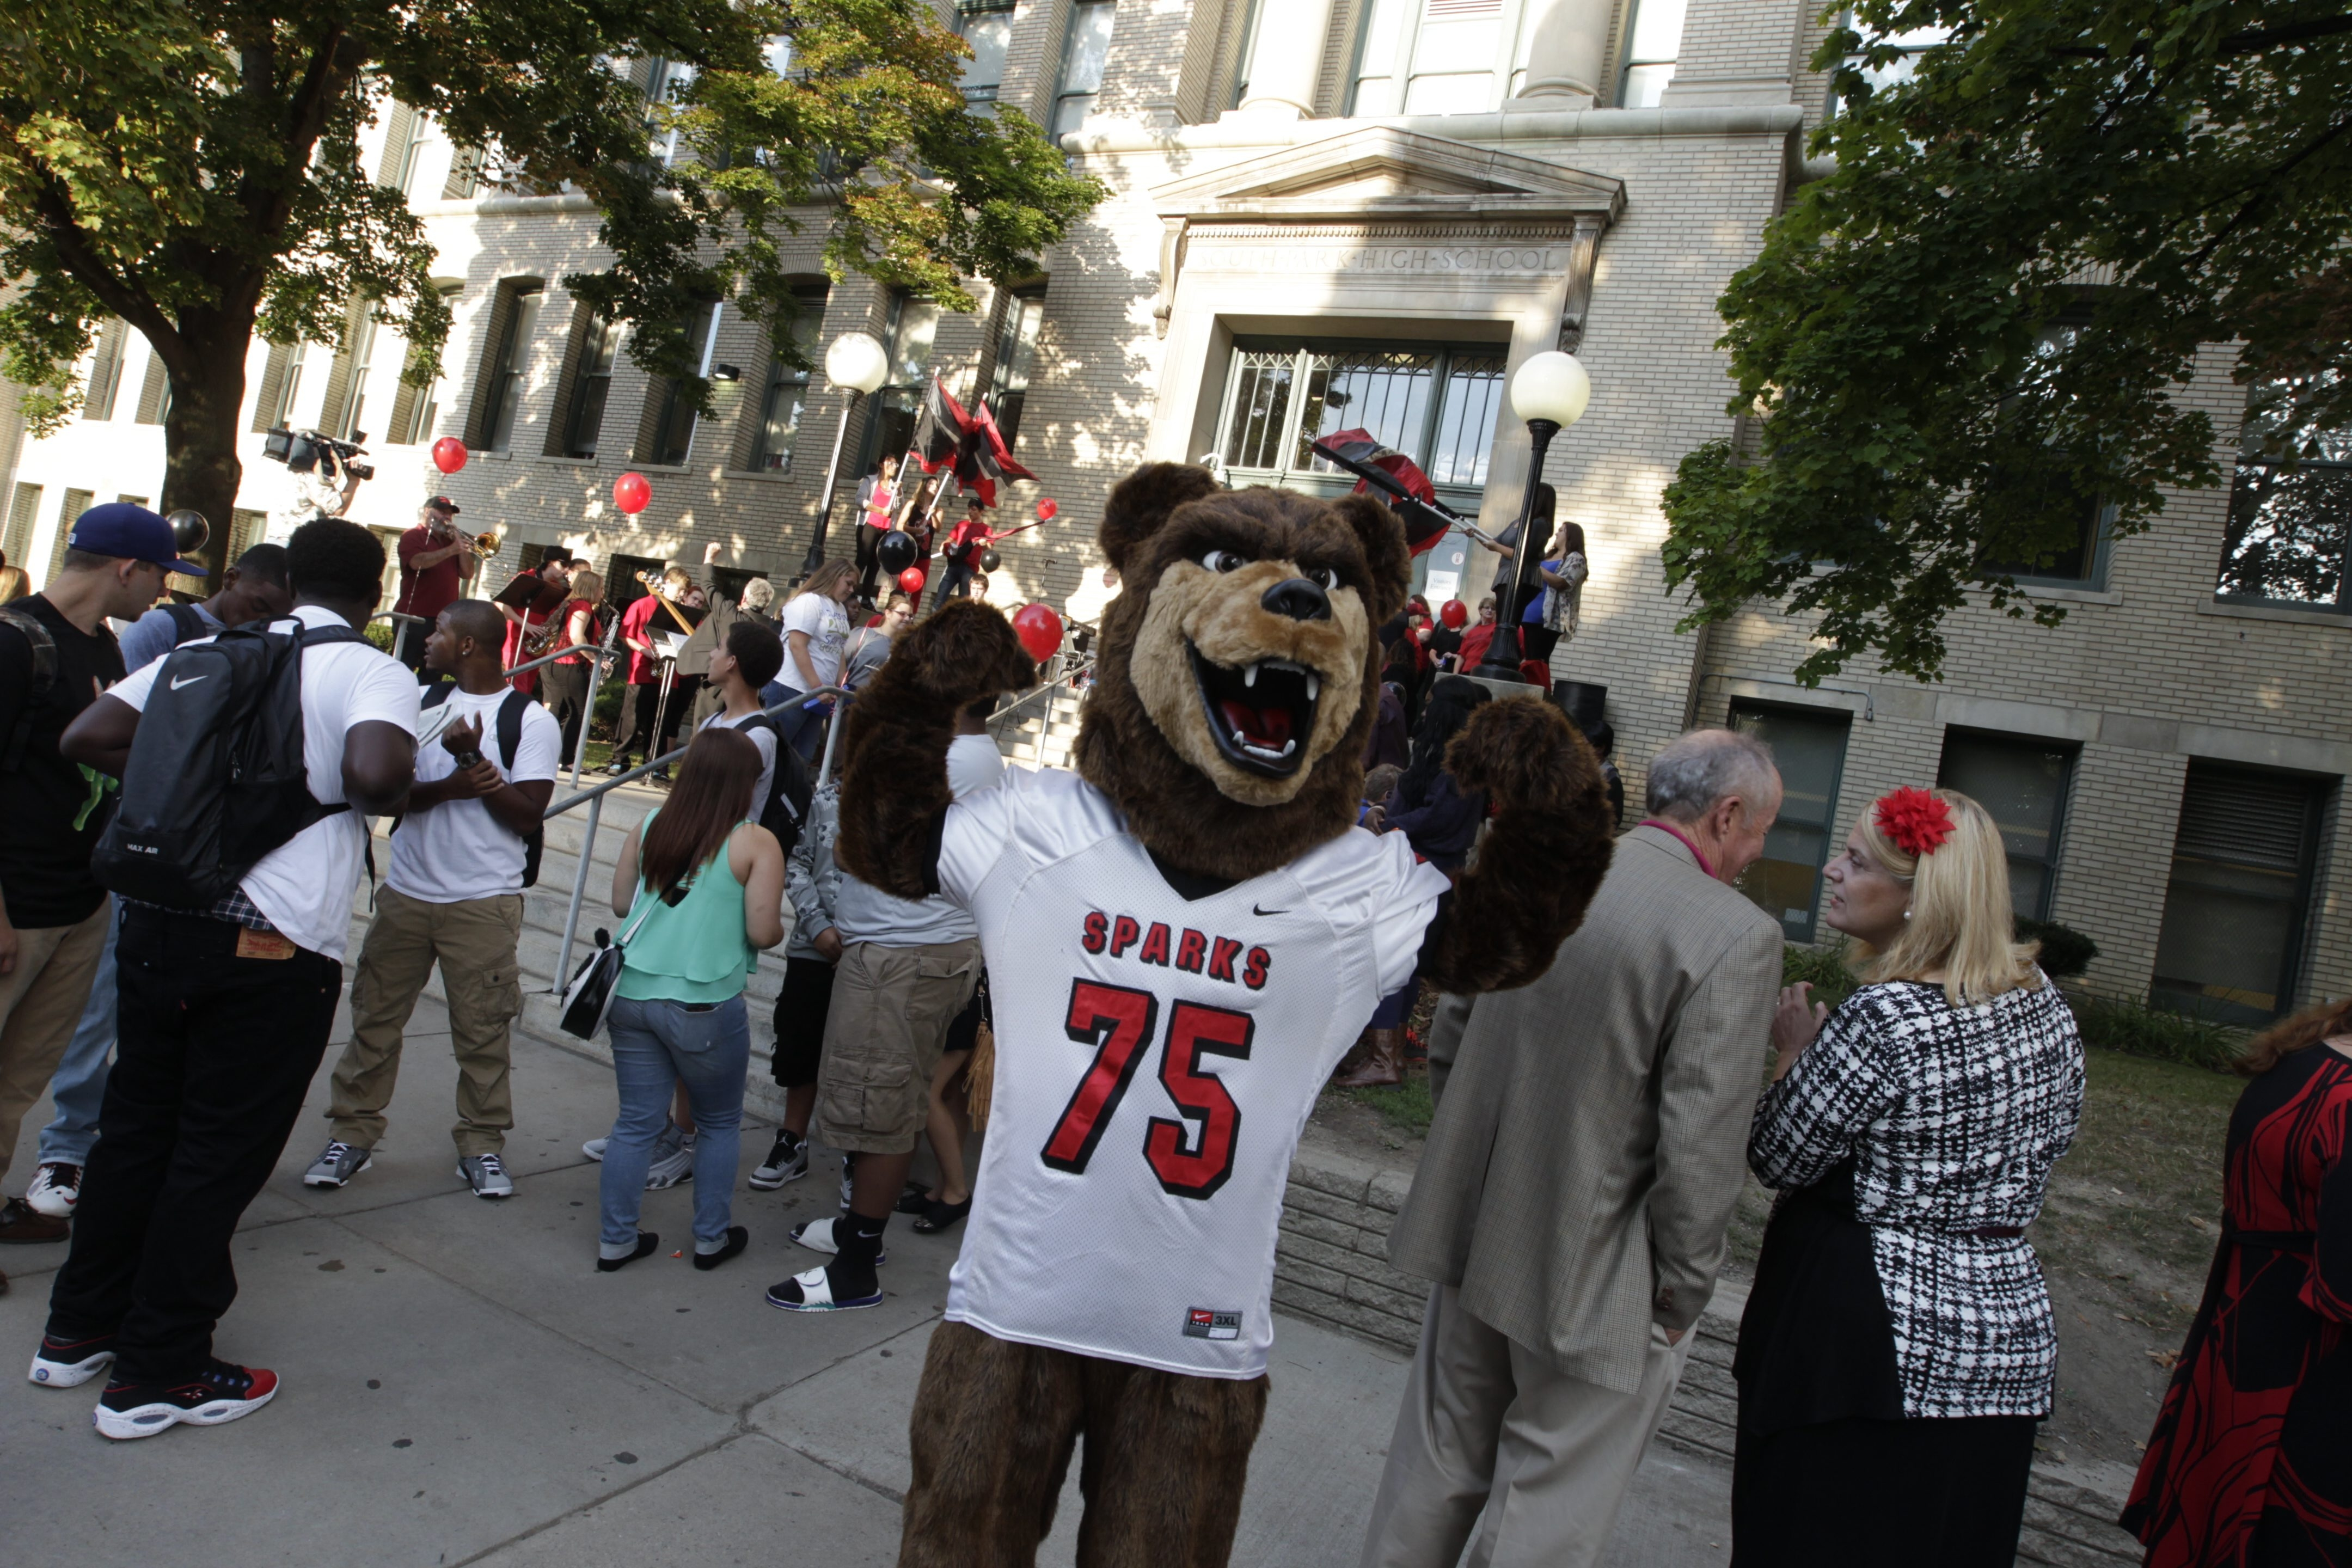 Students, teachers, alumni and mascot Sparks the Bear gathered for the first day of school Thursday at South Park High School, which is celebrating its 100th anniversary.